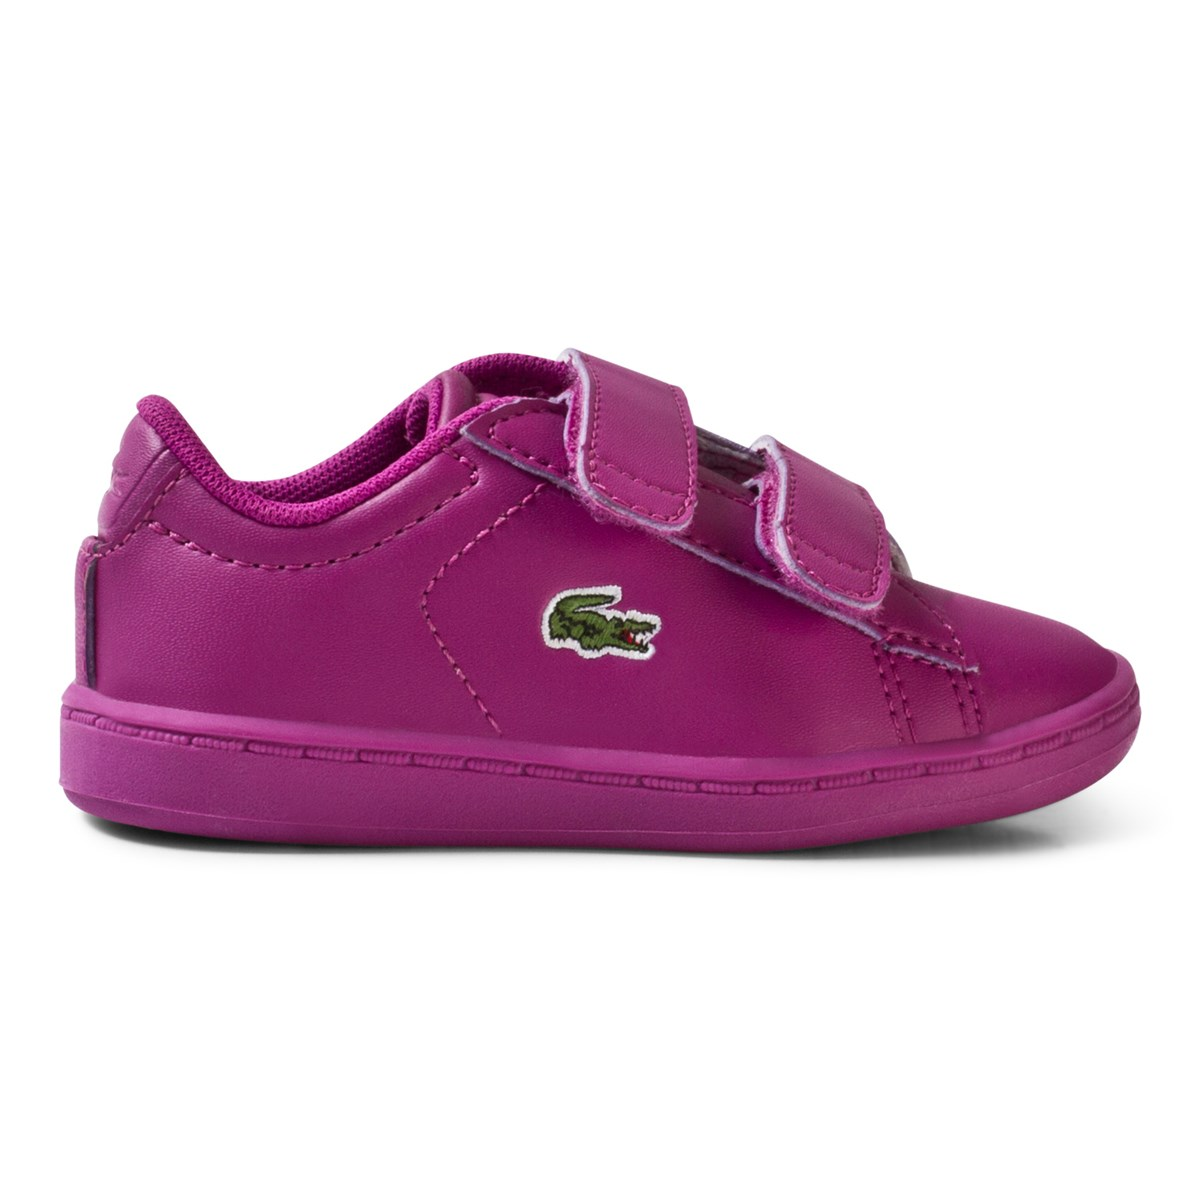 e1df2041c Lacoste - Carnaby Evo 317 5 SPI Trainers Pink - Babyshop.com